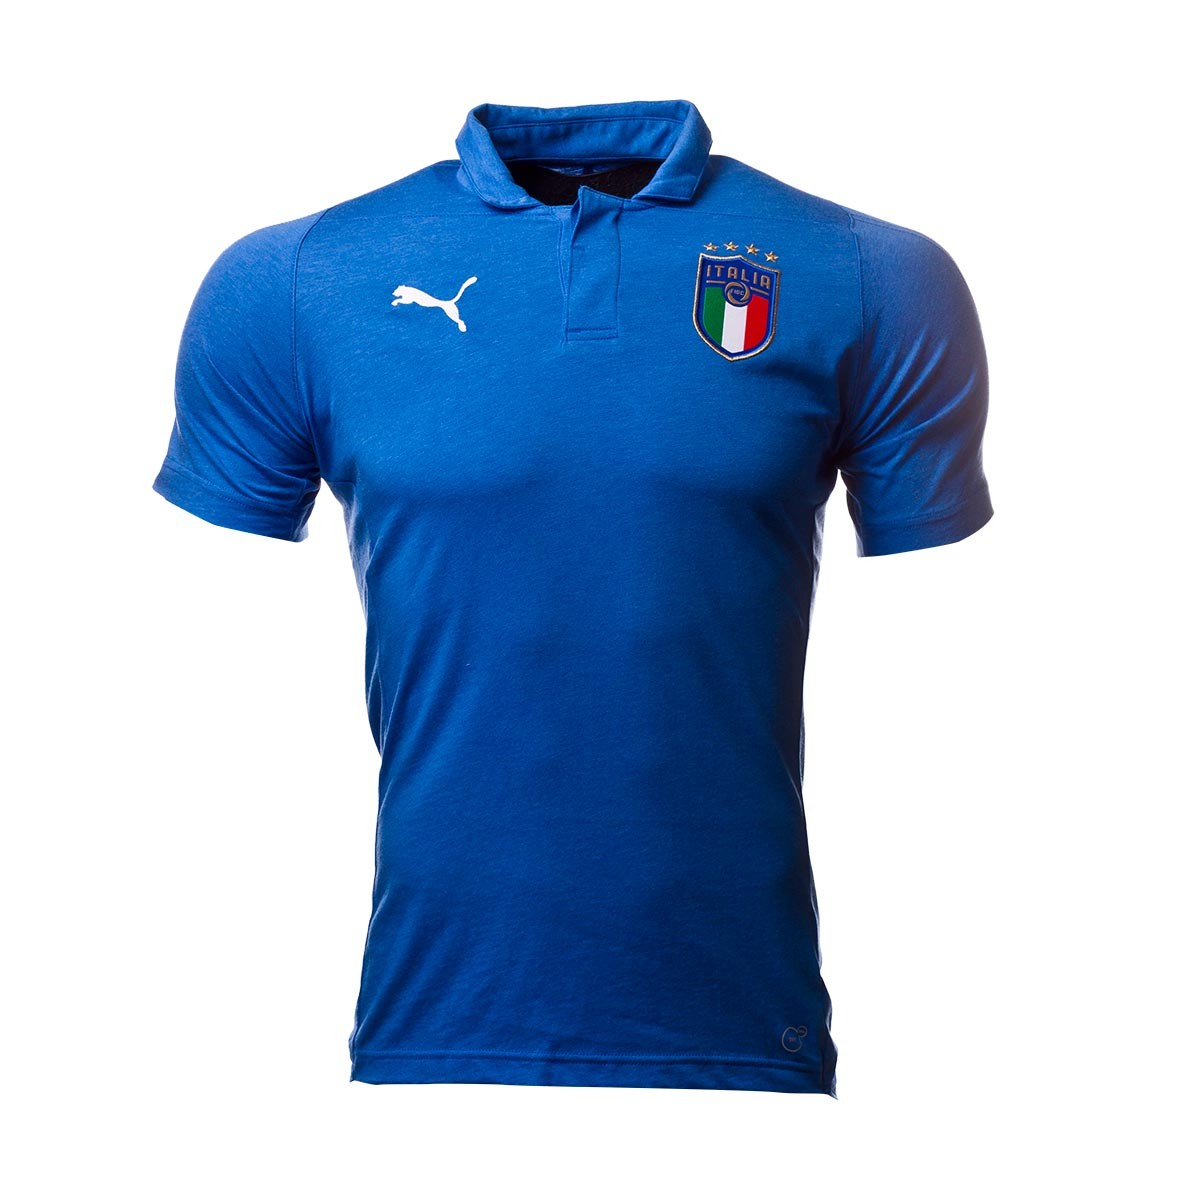 Polo shirt Puma Italy Casual Performance SS 2017-2018 Team power ... 52b9bb7ac129